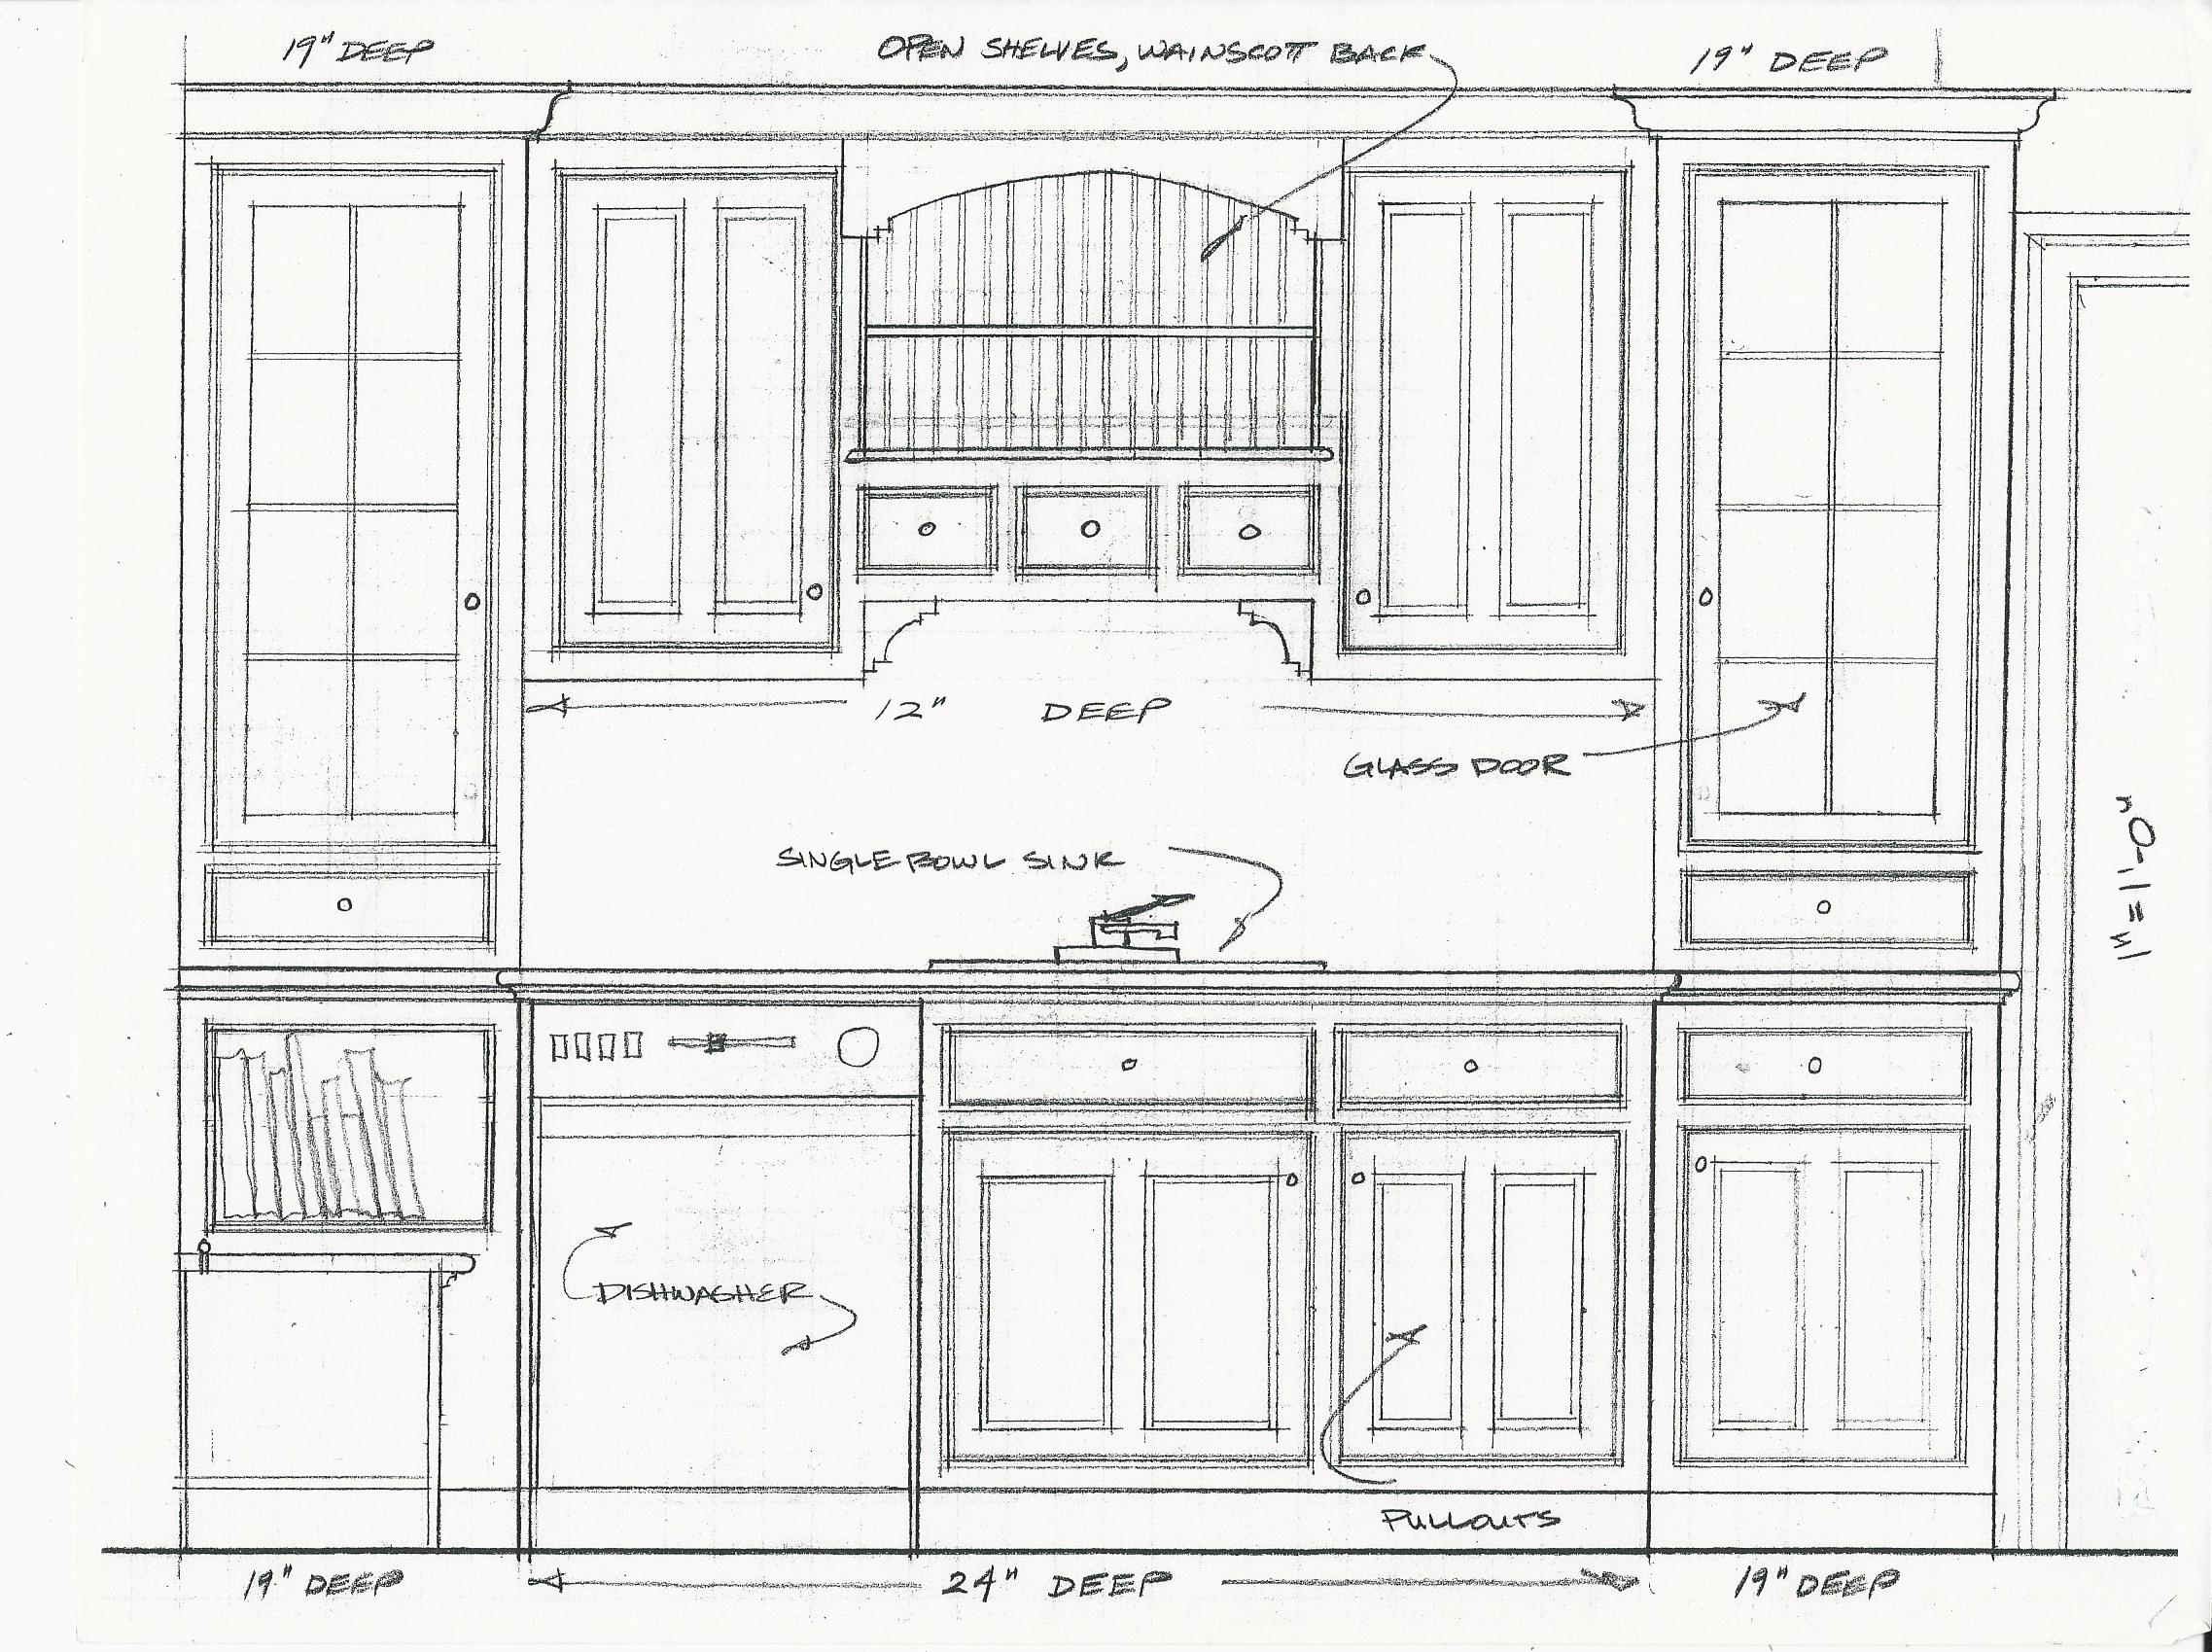 dovetail designs vt elevation drawing